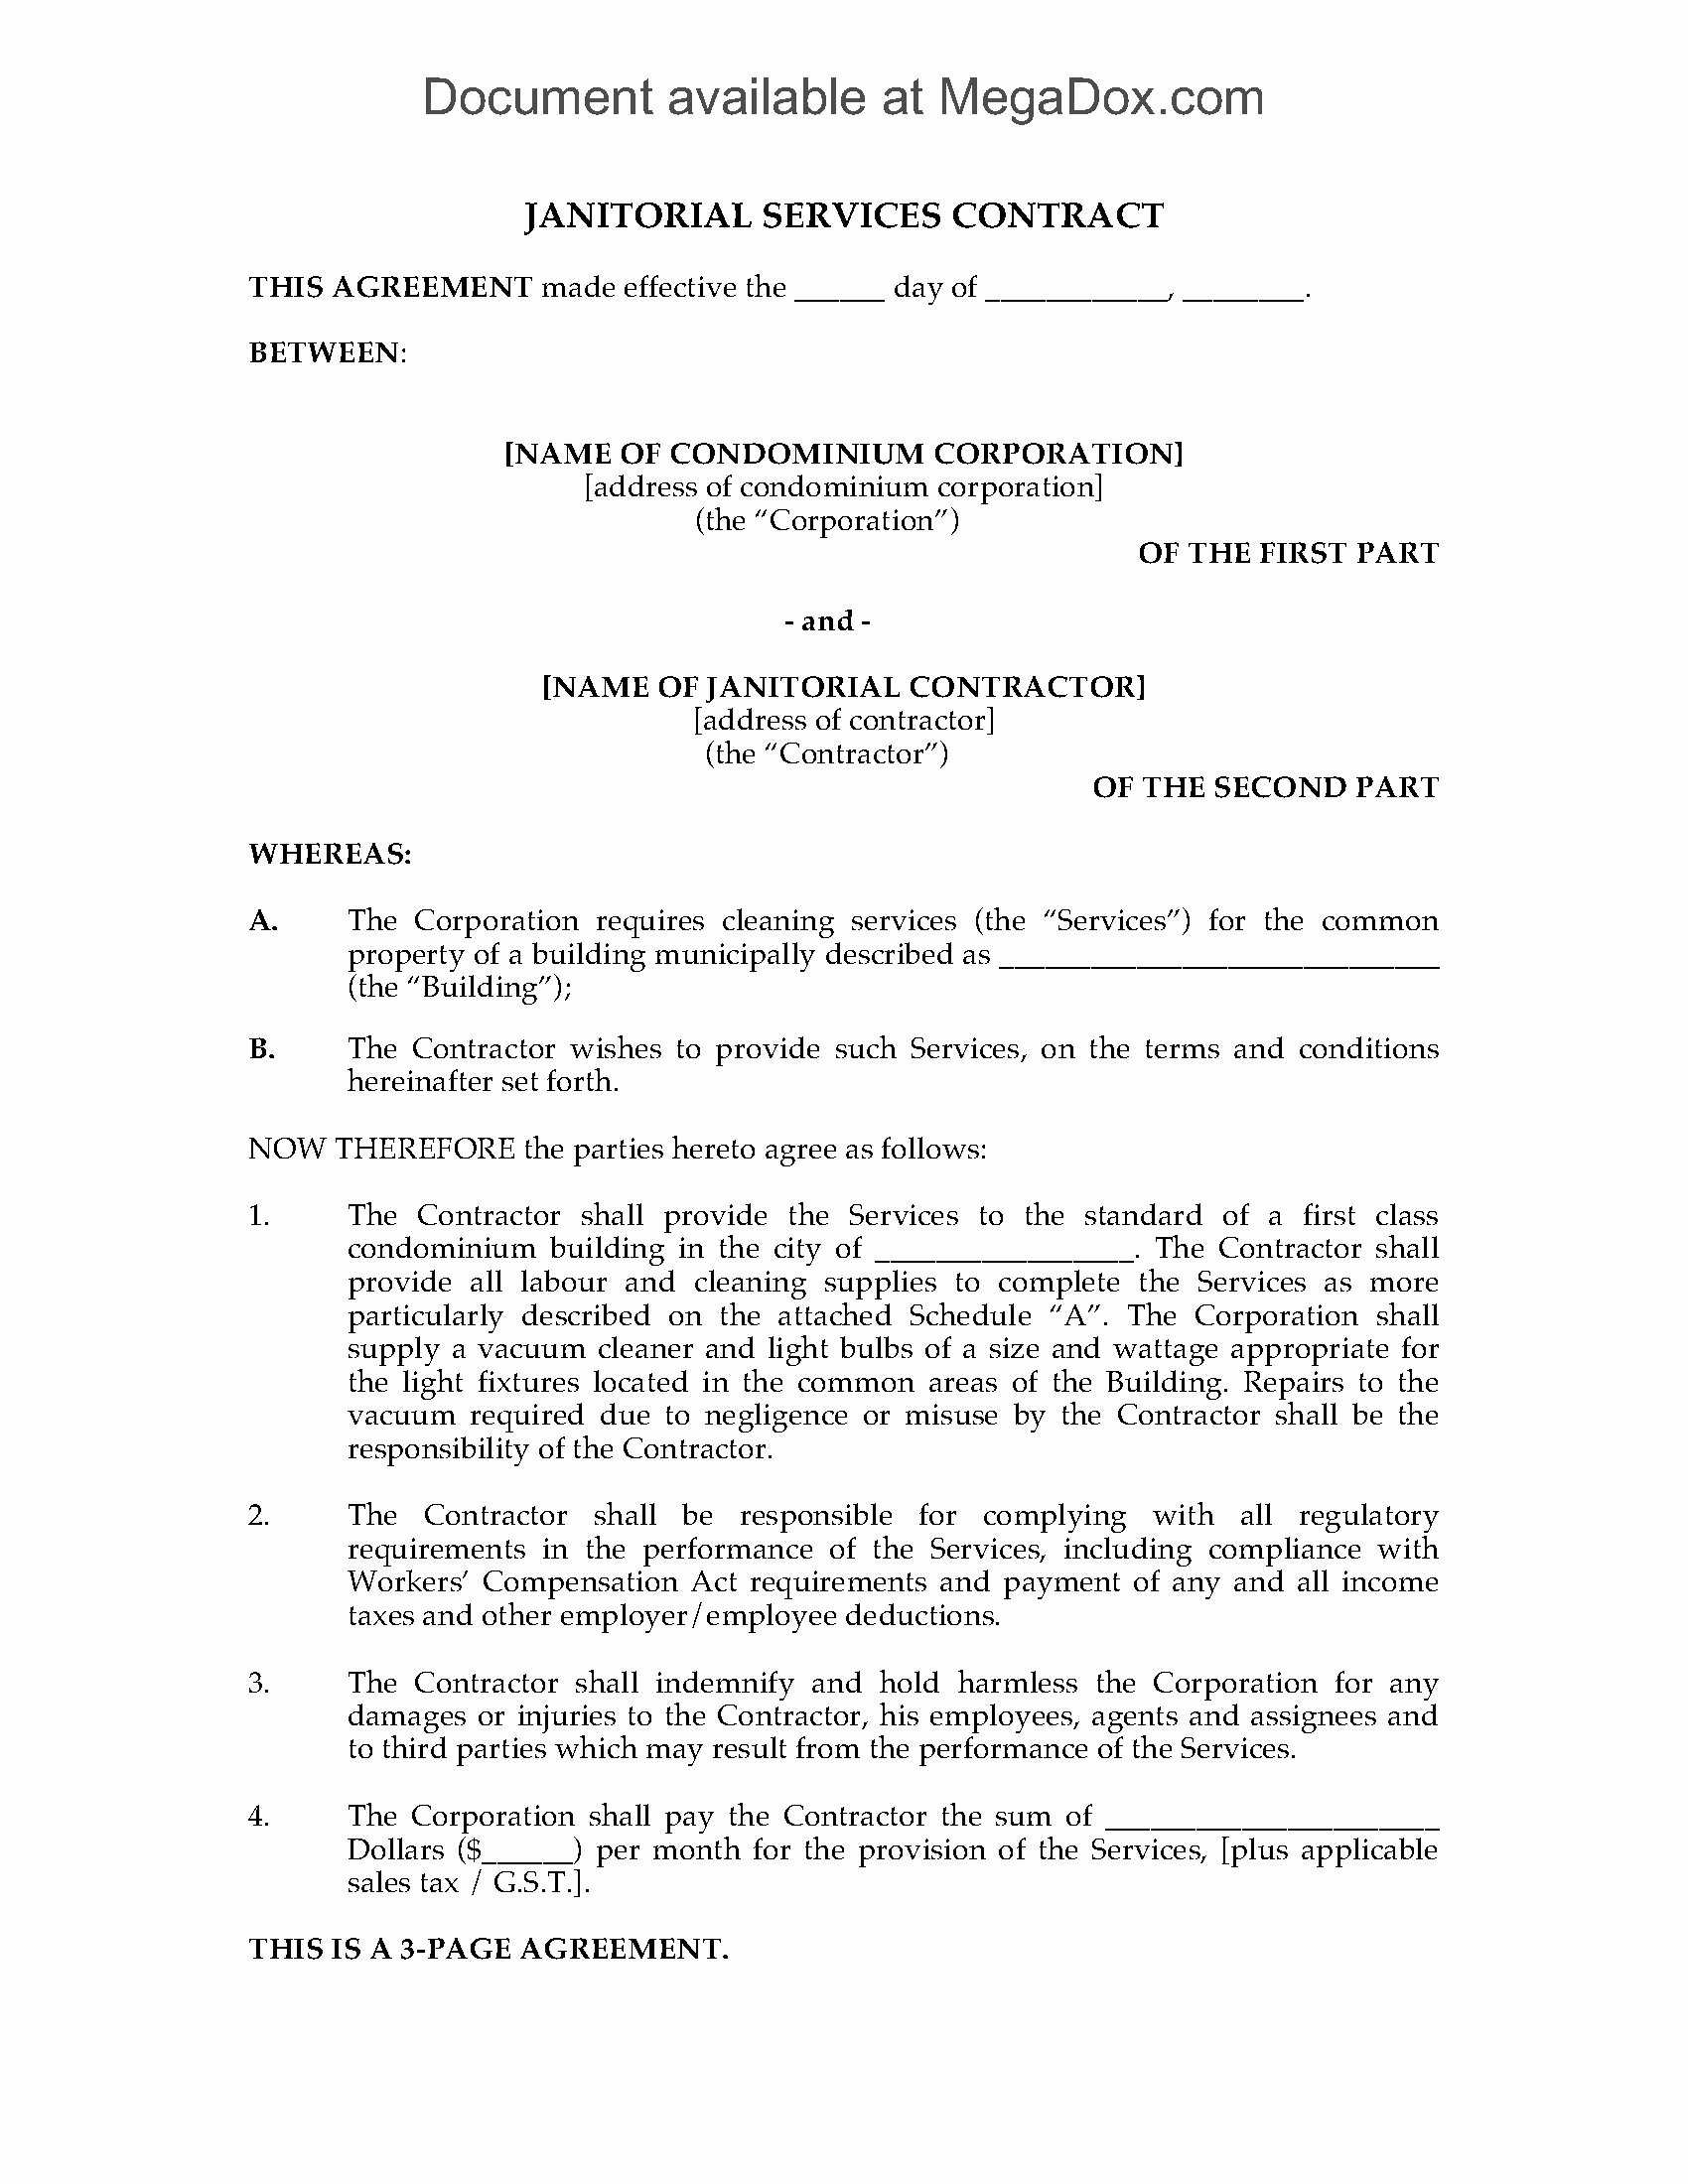 Janitorial Contract Template Awesome Cleaning Contract for Condominium Building